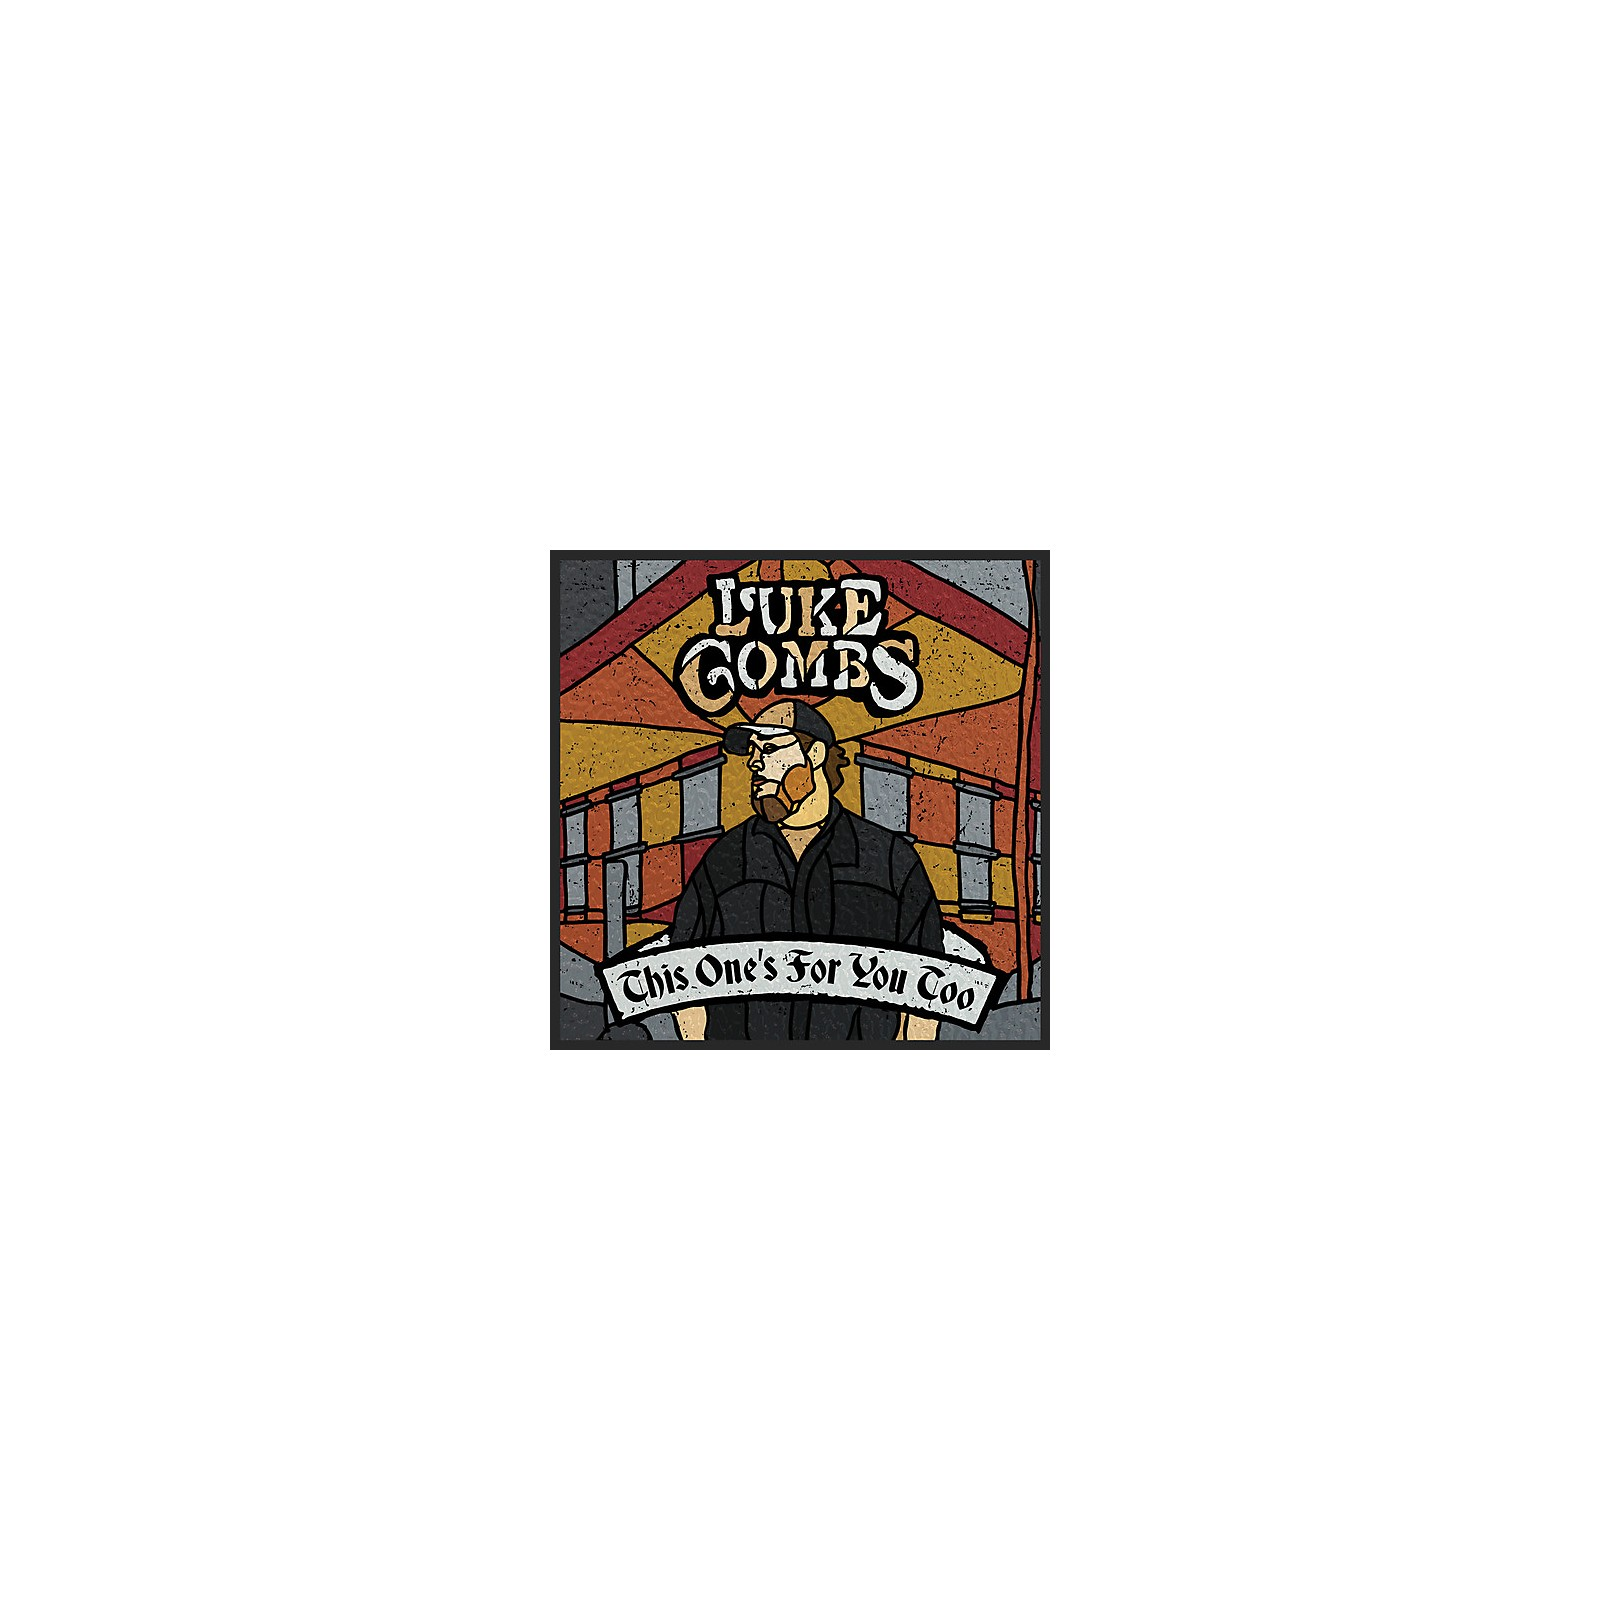 Alliance Luke Combs - This One's For You Too (CD)